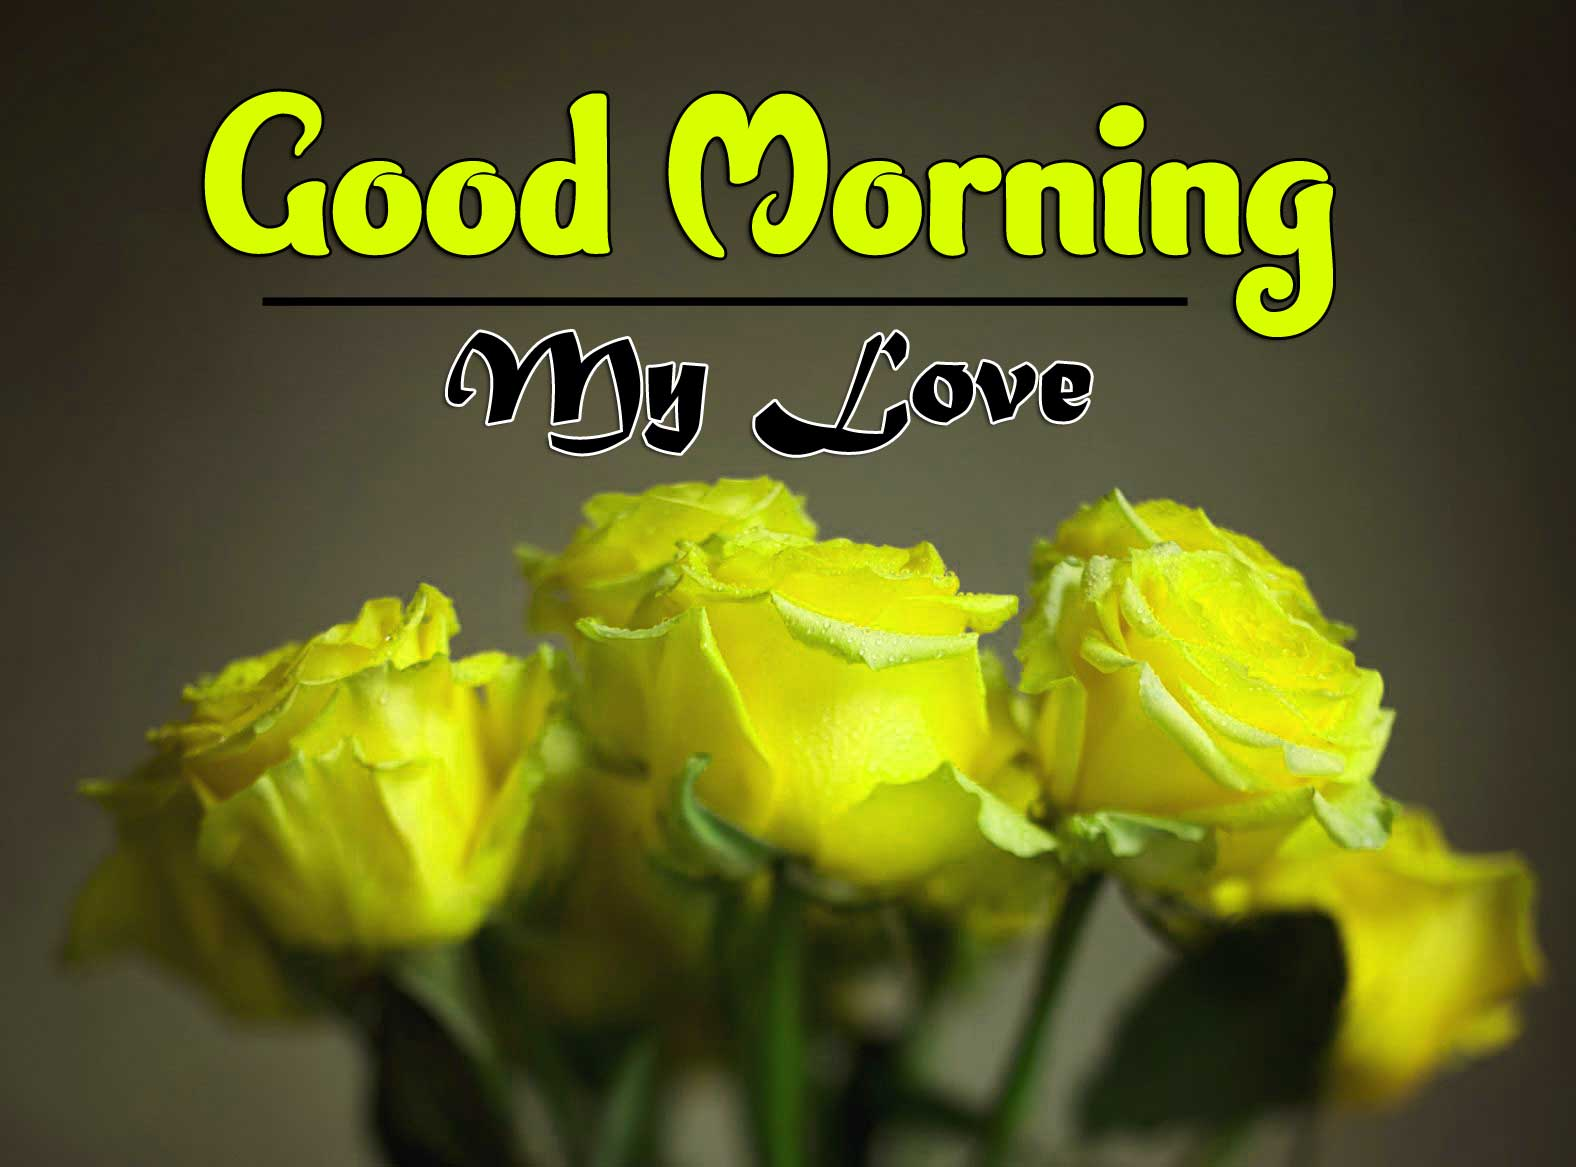 With Flower Good Morning Pics Download free